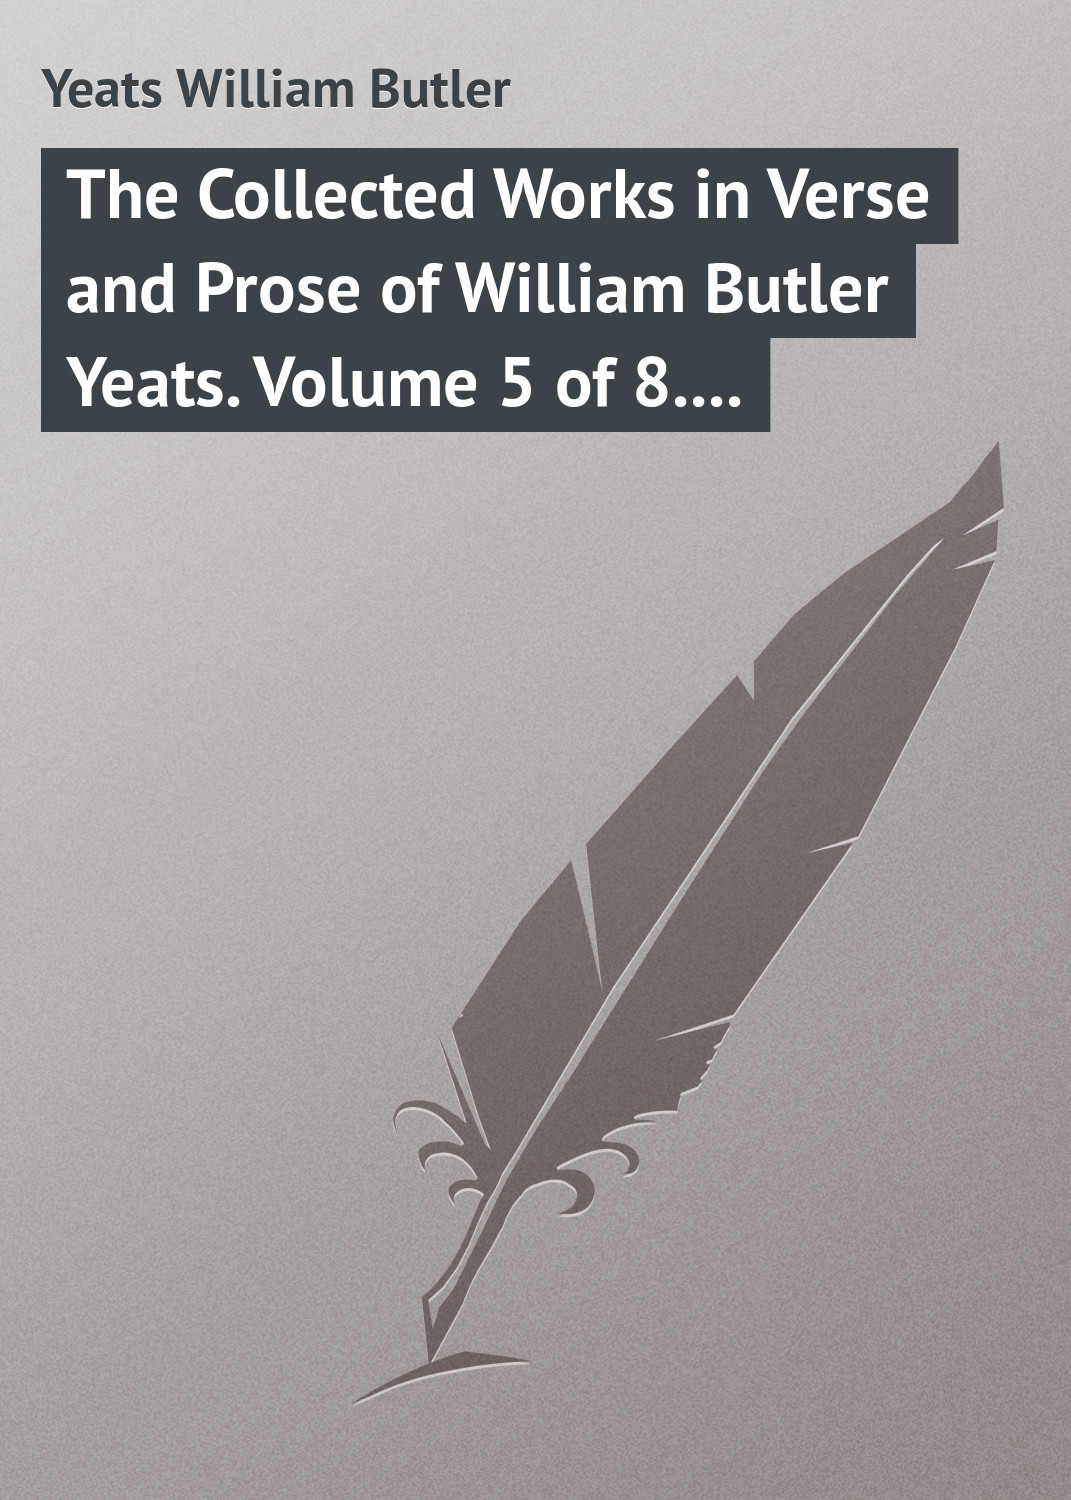 William Butler Yeats The Collected Works in Verse and Prose of William Butler Yeats. Volume 5 of 8. The Celtic Twilight and Stories of Red Hanrahan william monroe cockrum pioneer history of indiana including stories incidents and customs of the early settlers